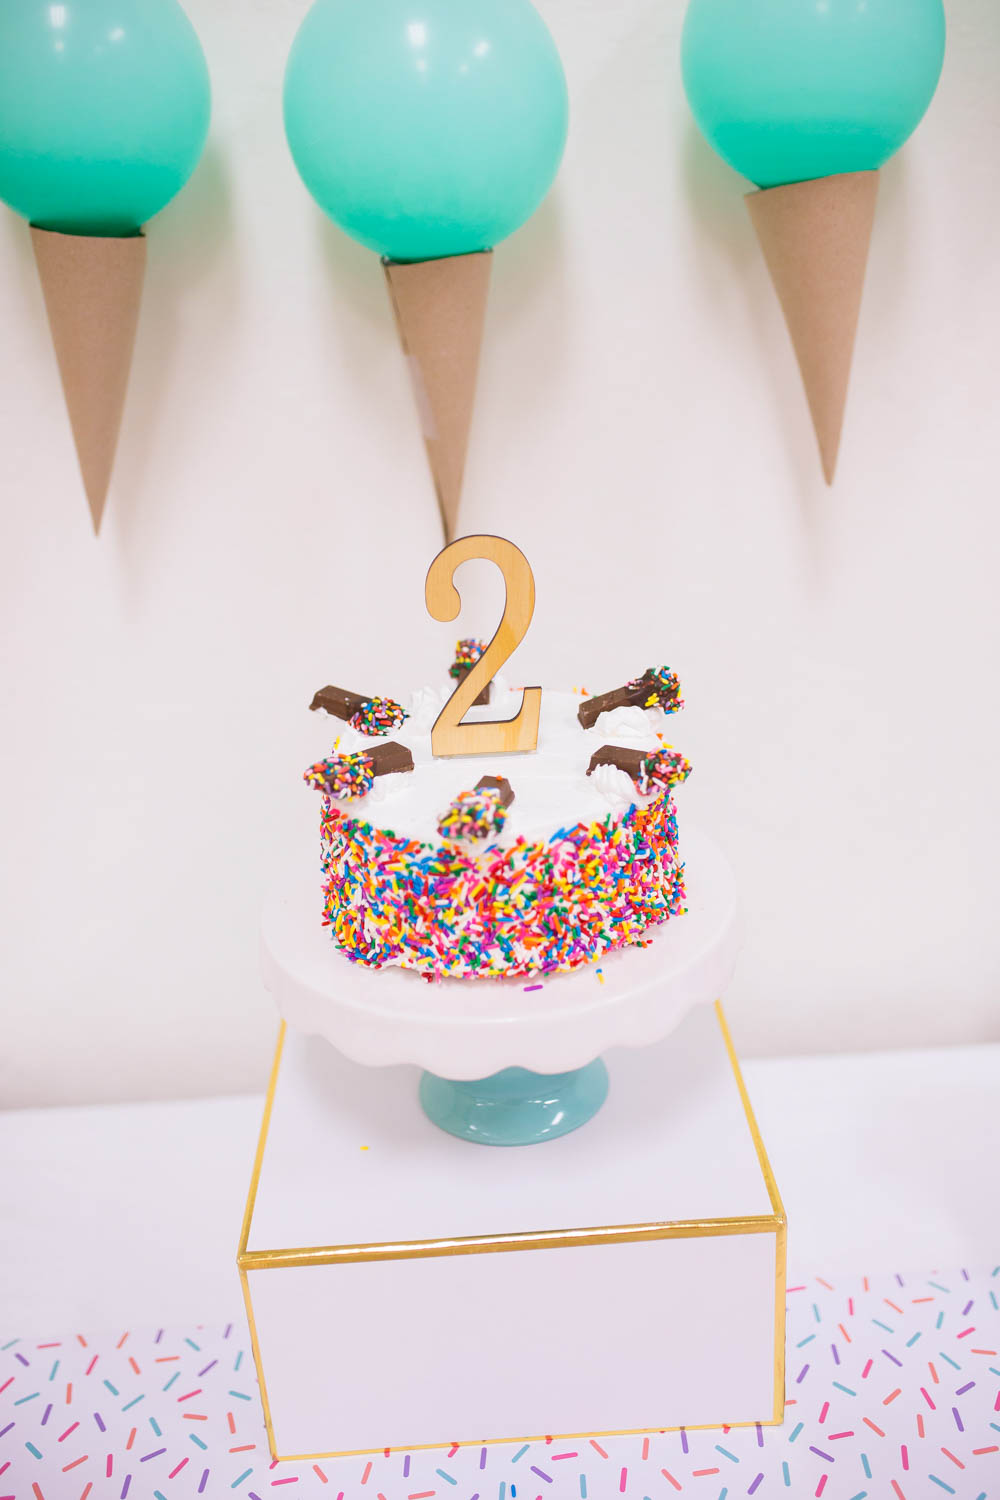 Ice Cream Party | Ice Cream Birthday Party | Birthday Party Ideas | Kids Birthday Party | Toddler Party | Ice Cream Sundae Bar